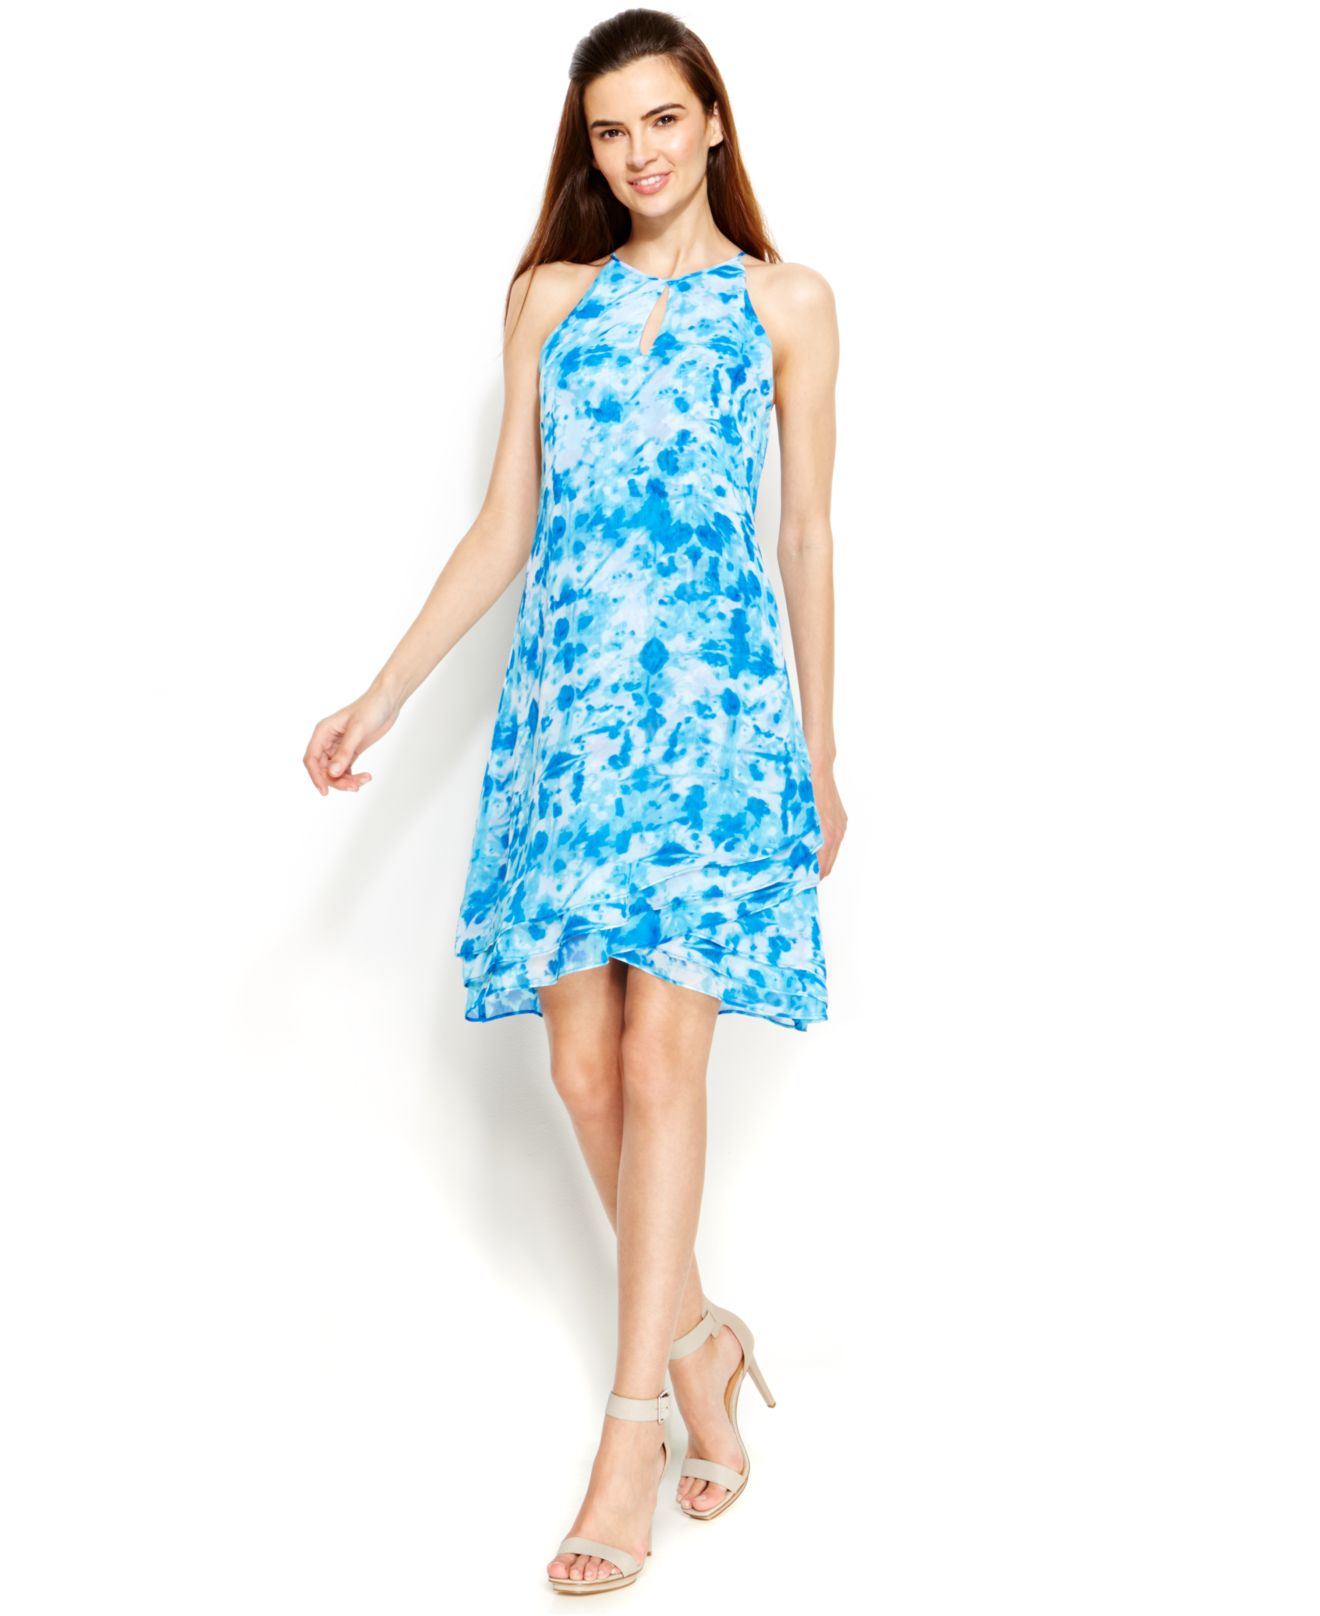 Lyst - Calvin Klein Petite Printed Keyhole Trapeze Dress in Blue